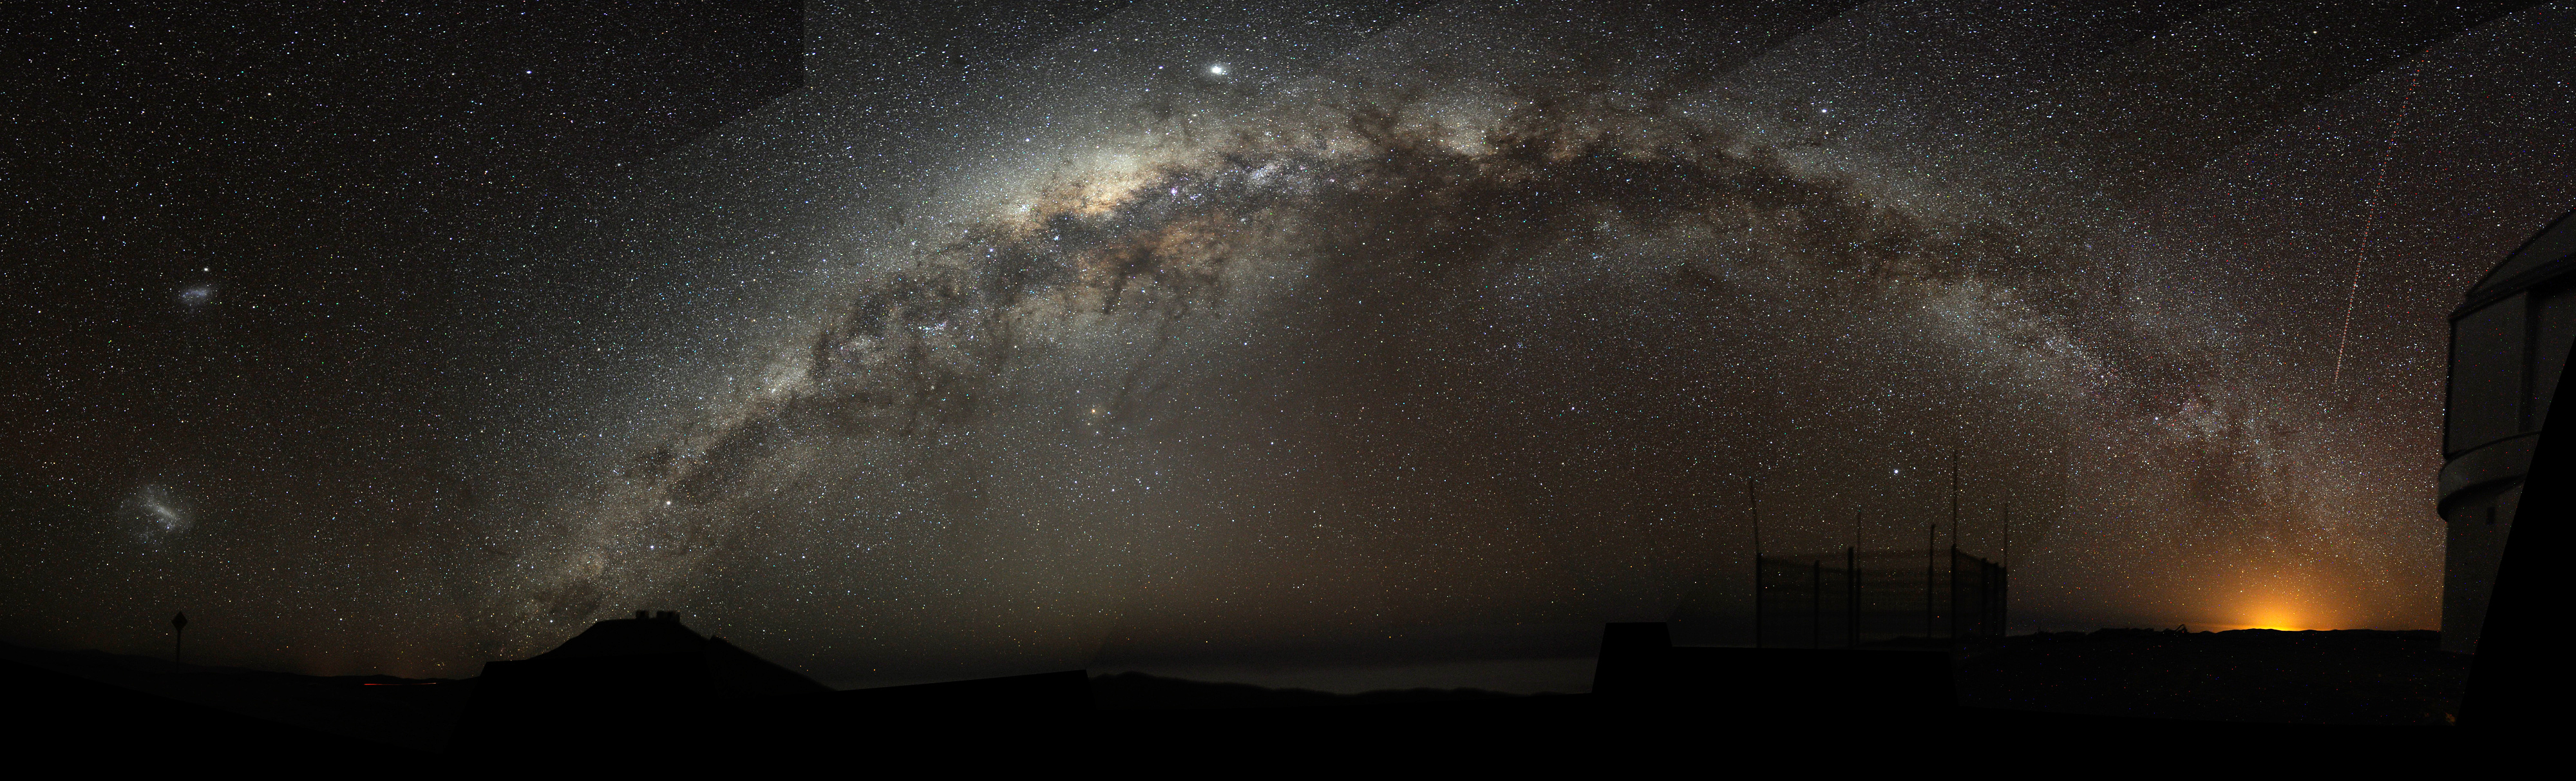 file:milky way arch - wikimedia commons